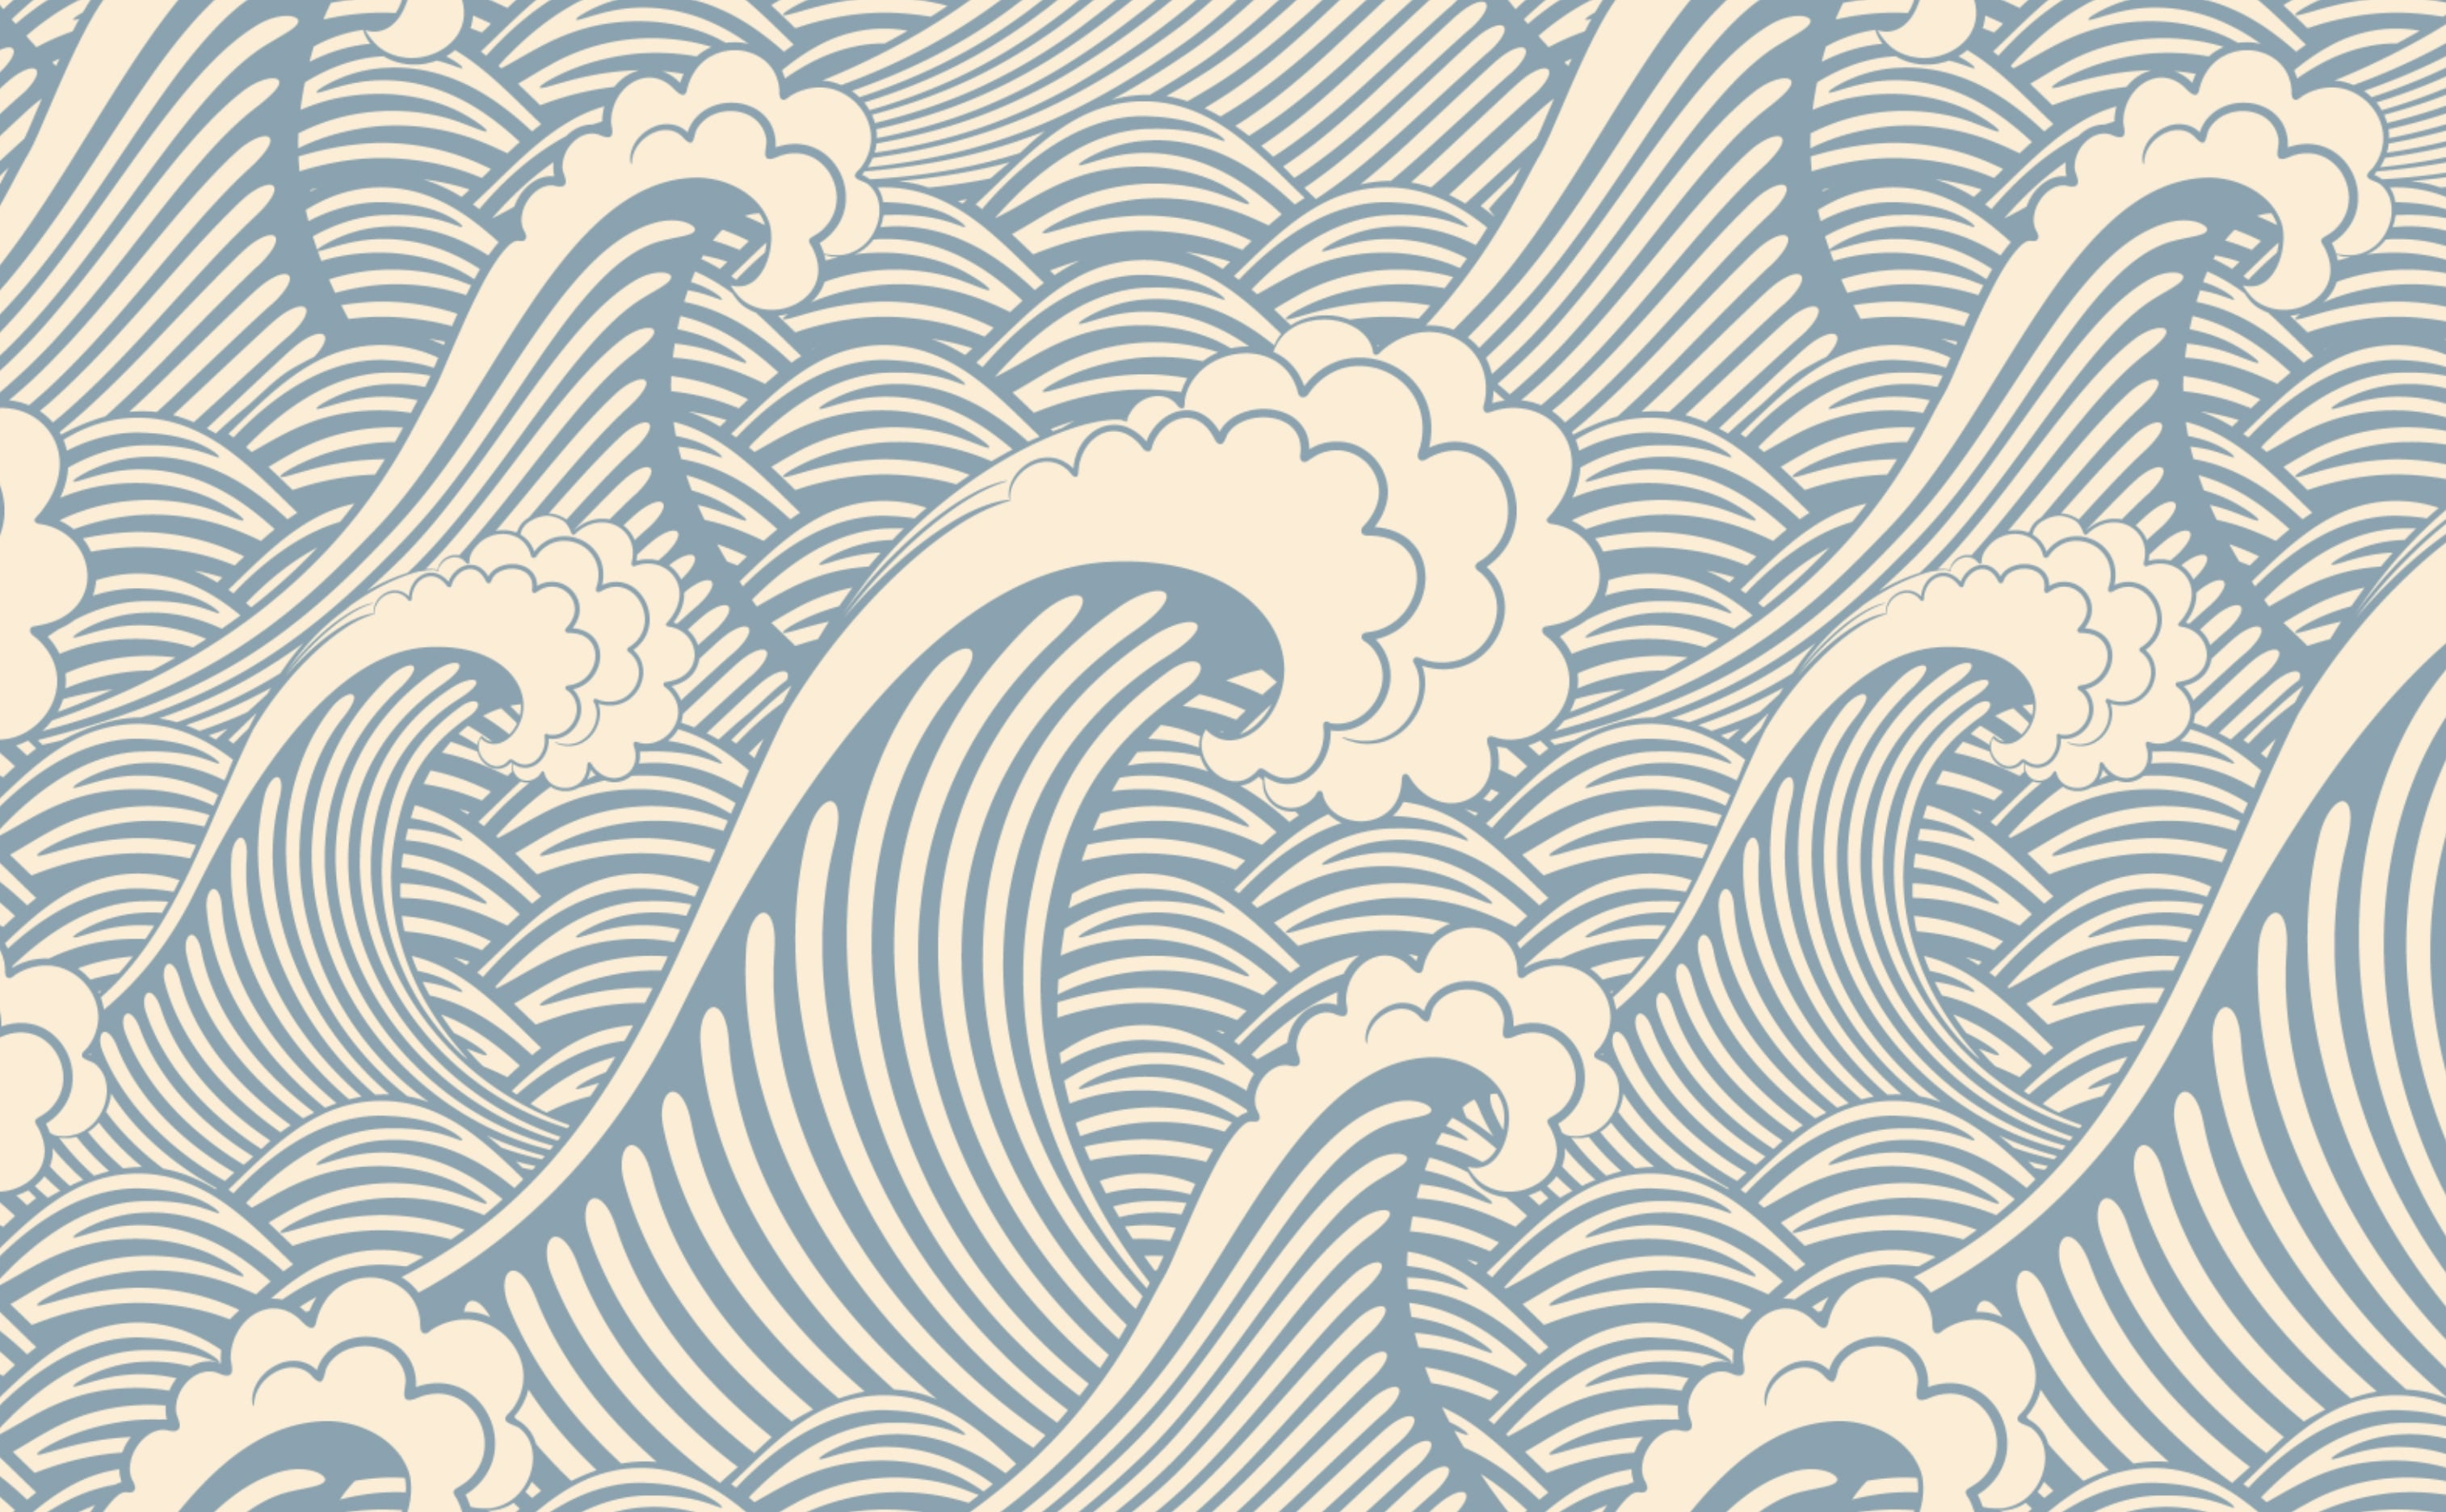 w0263 1s Nautical Waves Wallpaper for Walls Waves of Chic Repeating Pattern Sample 1